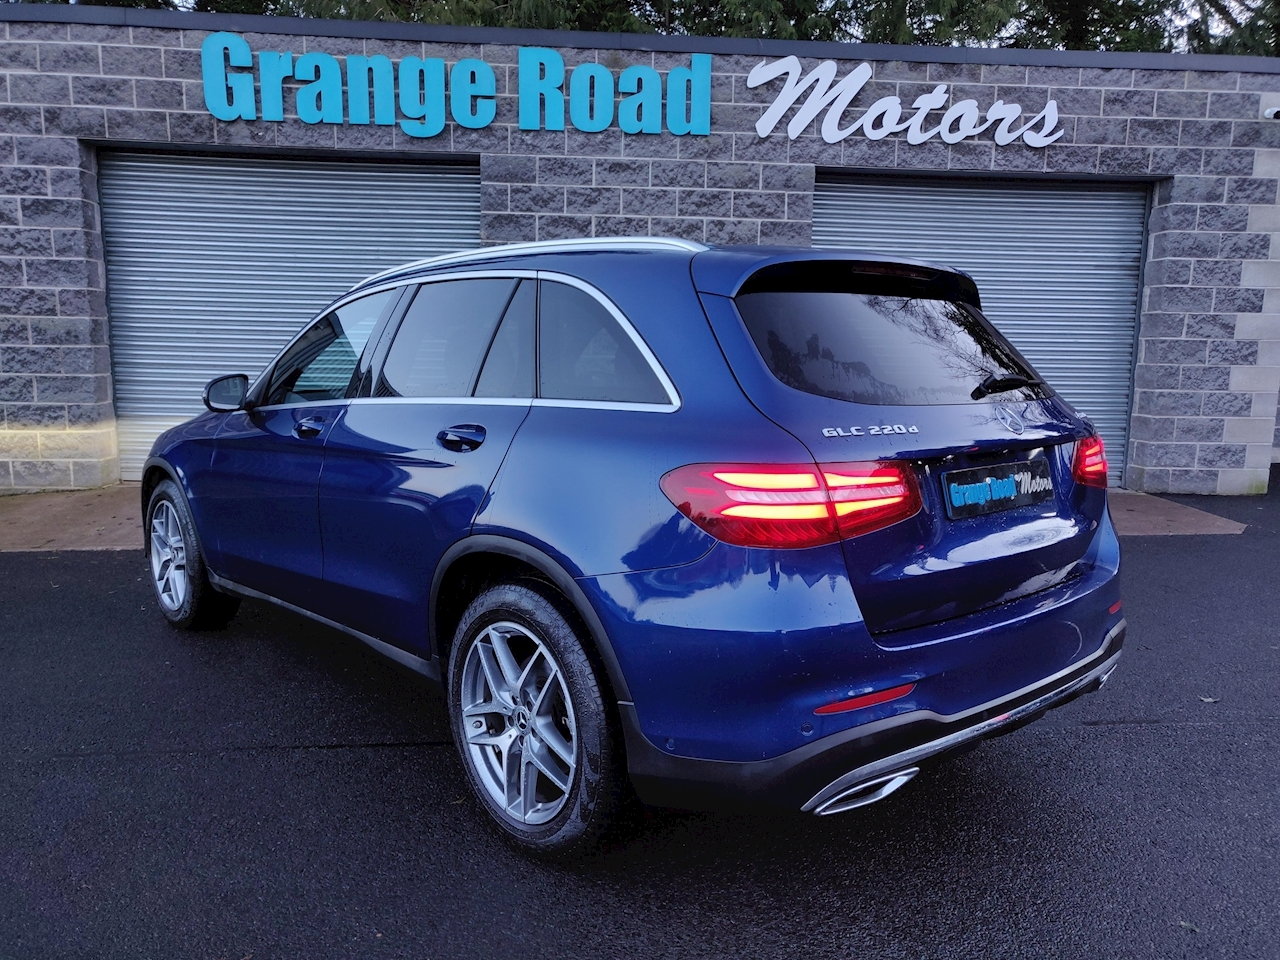 Mercedes-Benz 2.1 GLC220d AMG Line SUV 5dr Diesel G-Tronic 4MATIC (s/s) (170 ps)